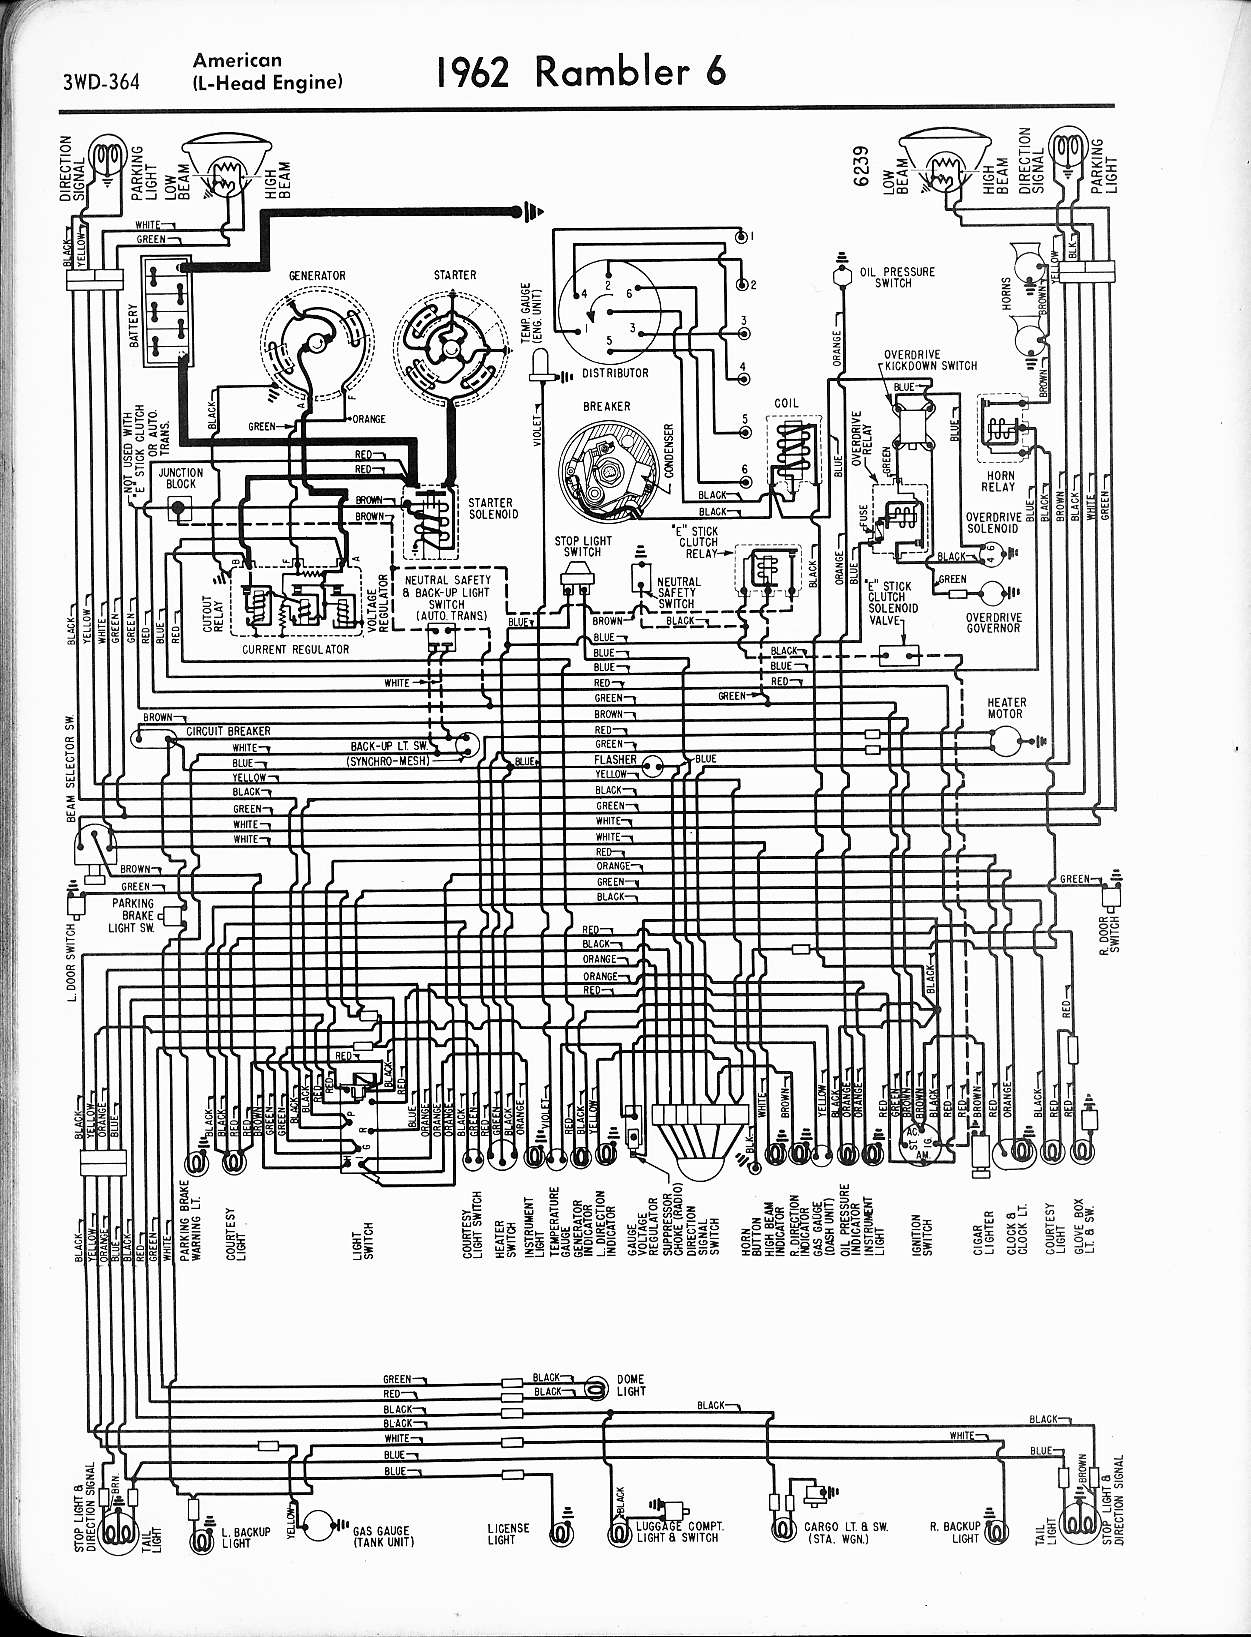 rambler wiring diagrams the old car manual project rh oldcarmanualproject com Toyota Wiring Harness Diagram Chevy Wiring Harness Diagram